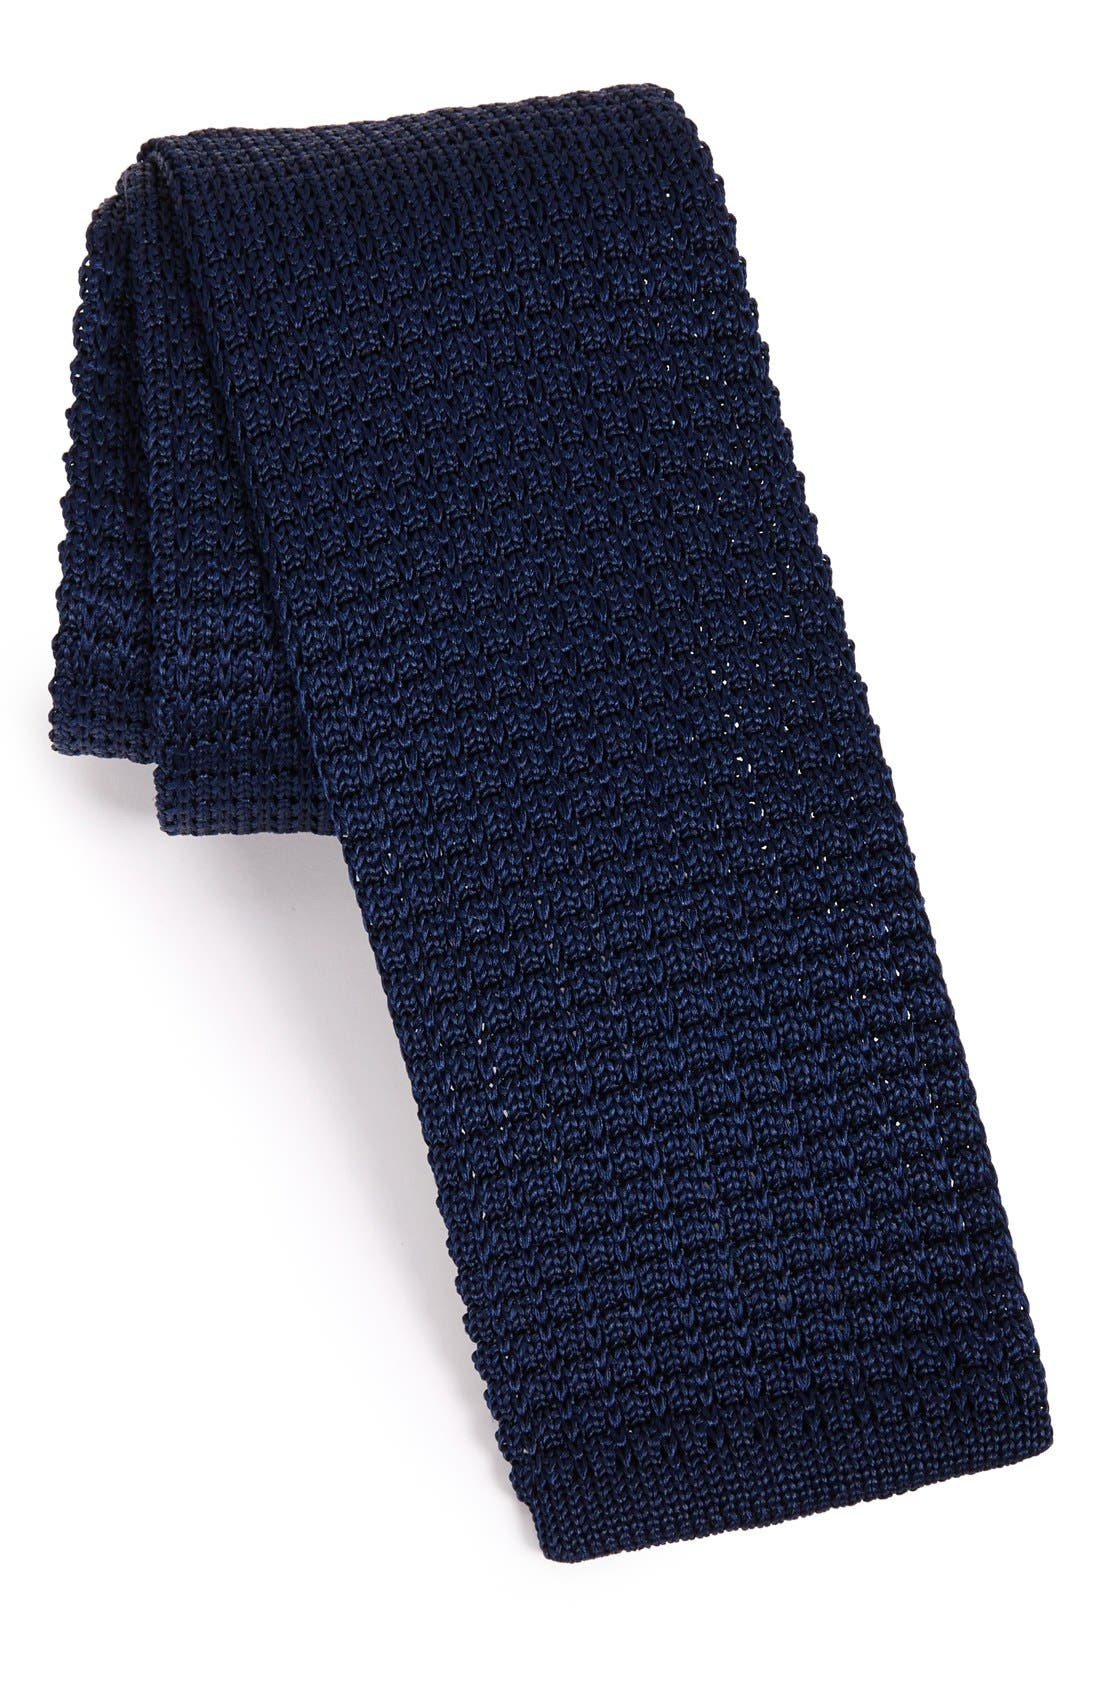 Knit Silk Tie,                         Main,                         color, NAVY